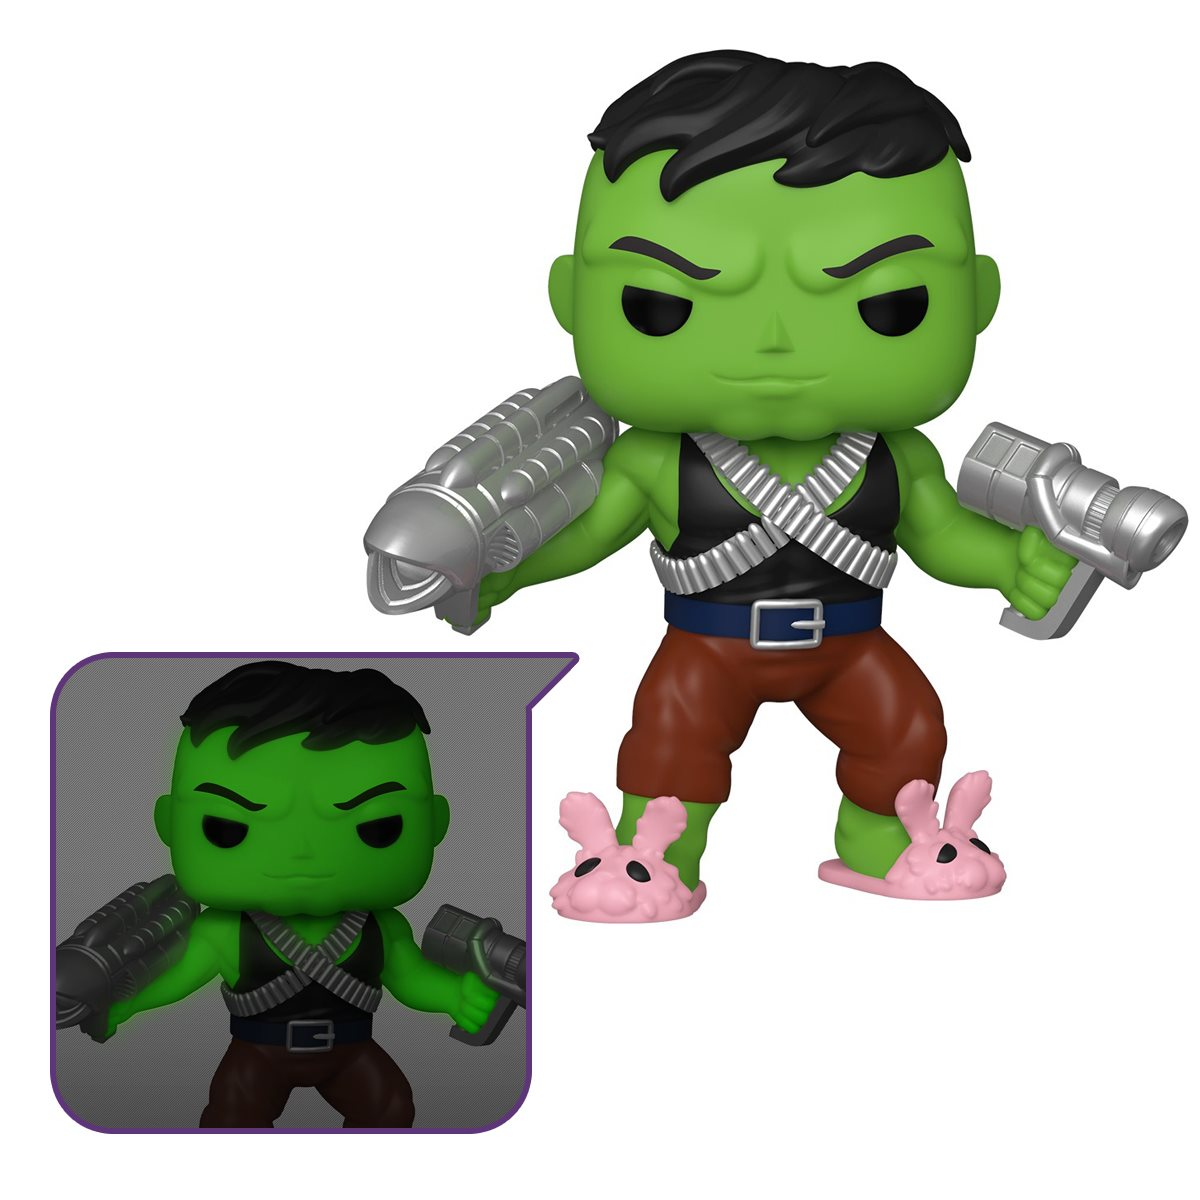 PRÉ VENDA: Funko Pop! Professor Hulk: PX Previews Limited Edition Exclusive Super Sized 6 Marvel #705  - Funko